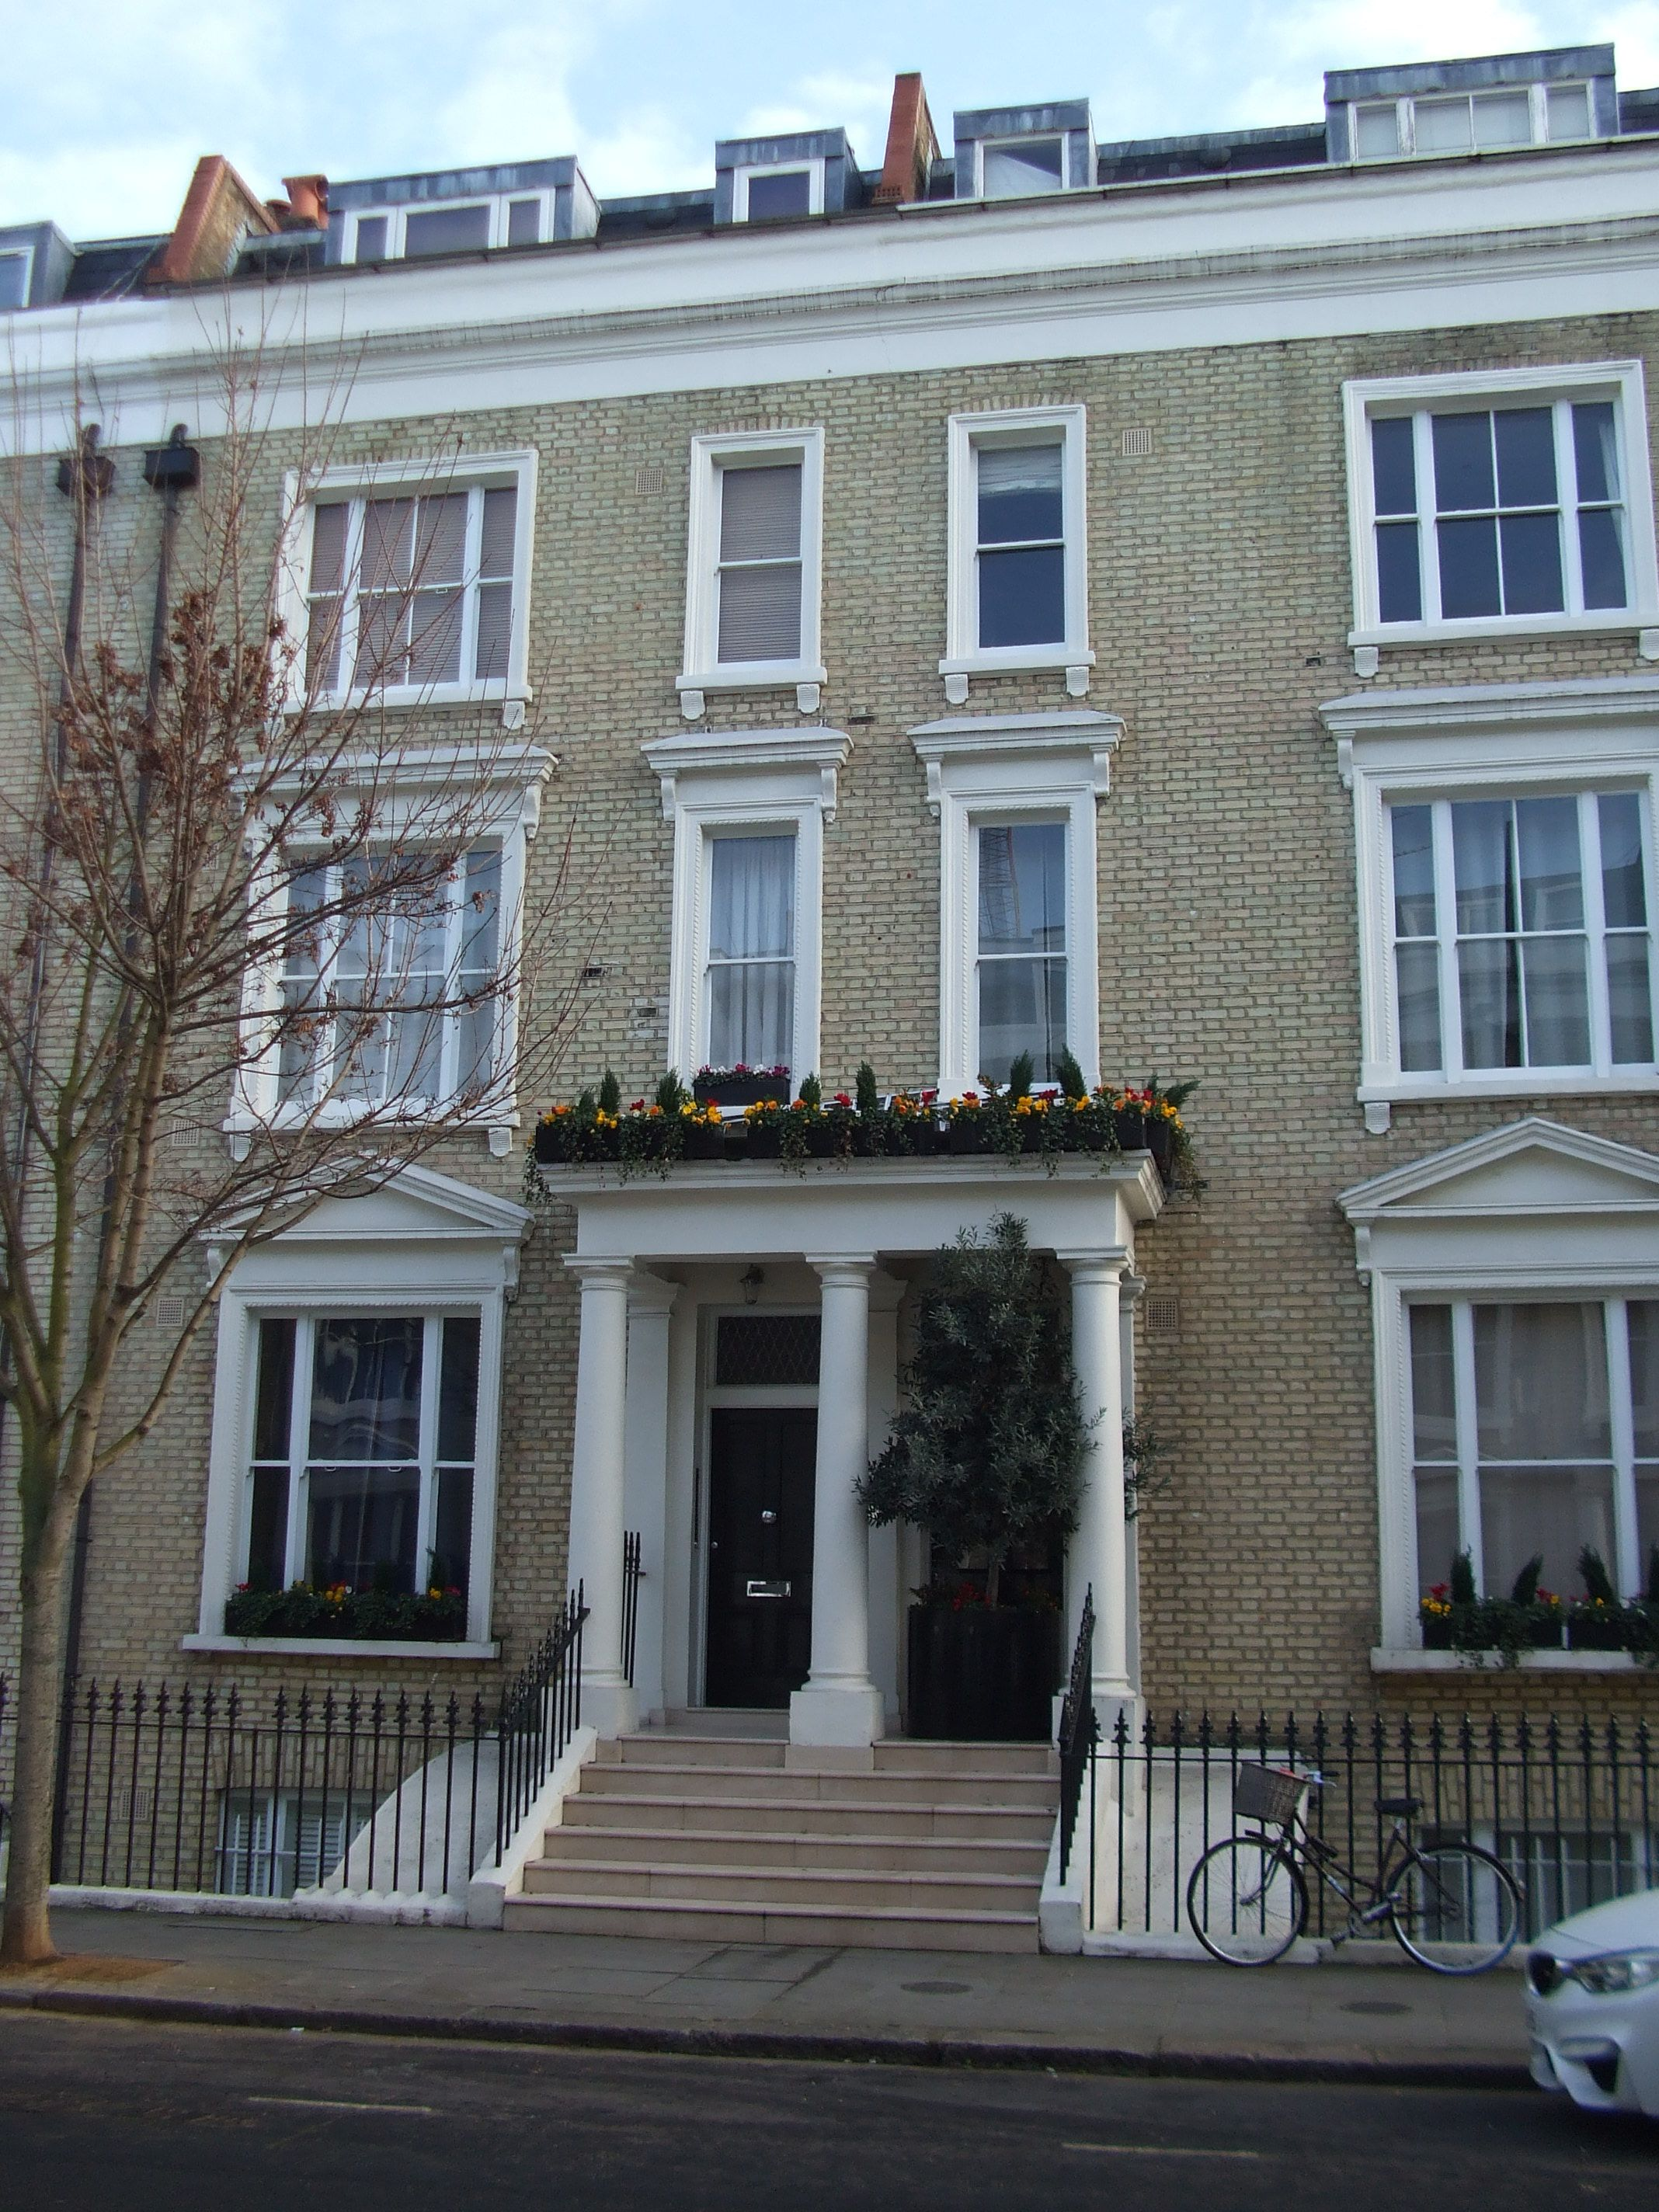 Pin On Crescent Court: A Lovely House In Eardsley Crescent, Earl's Court, London; This Is Just The Kind Of Place I